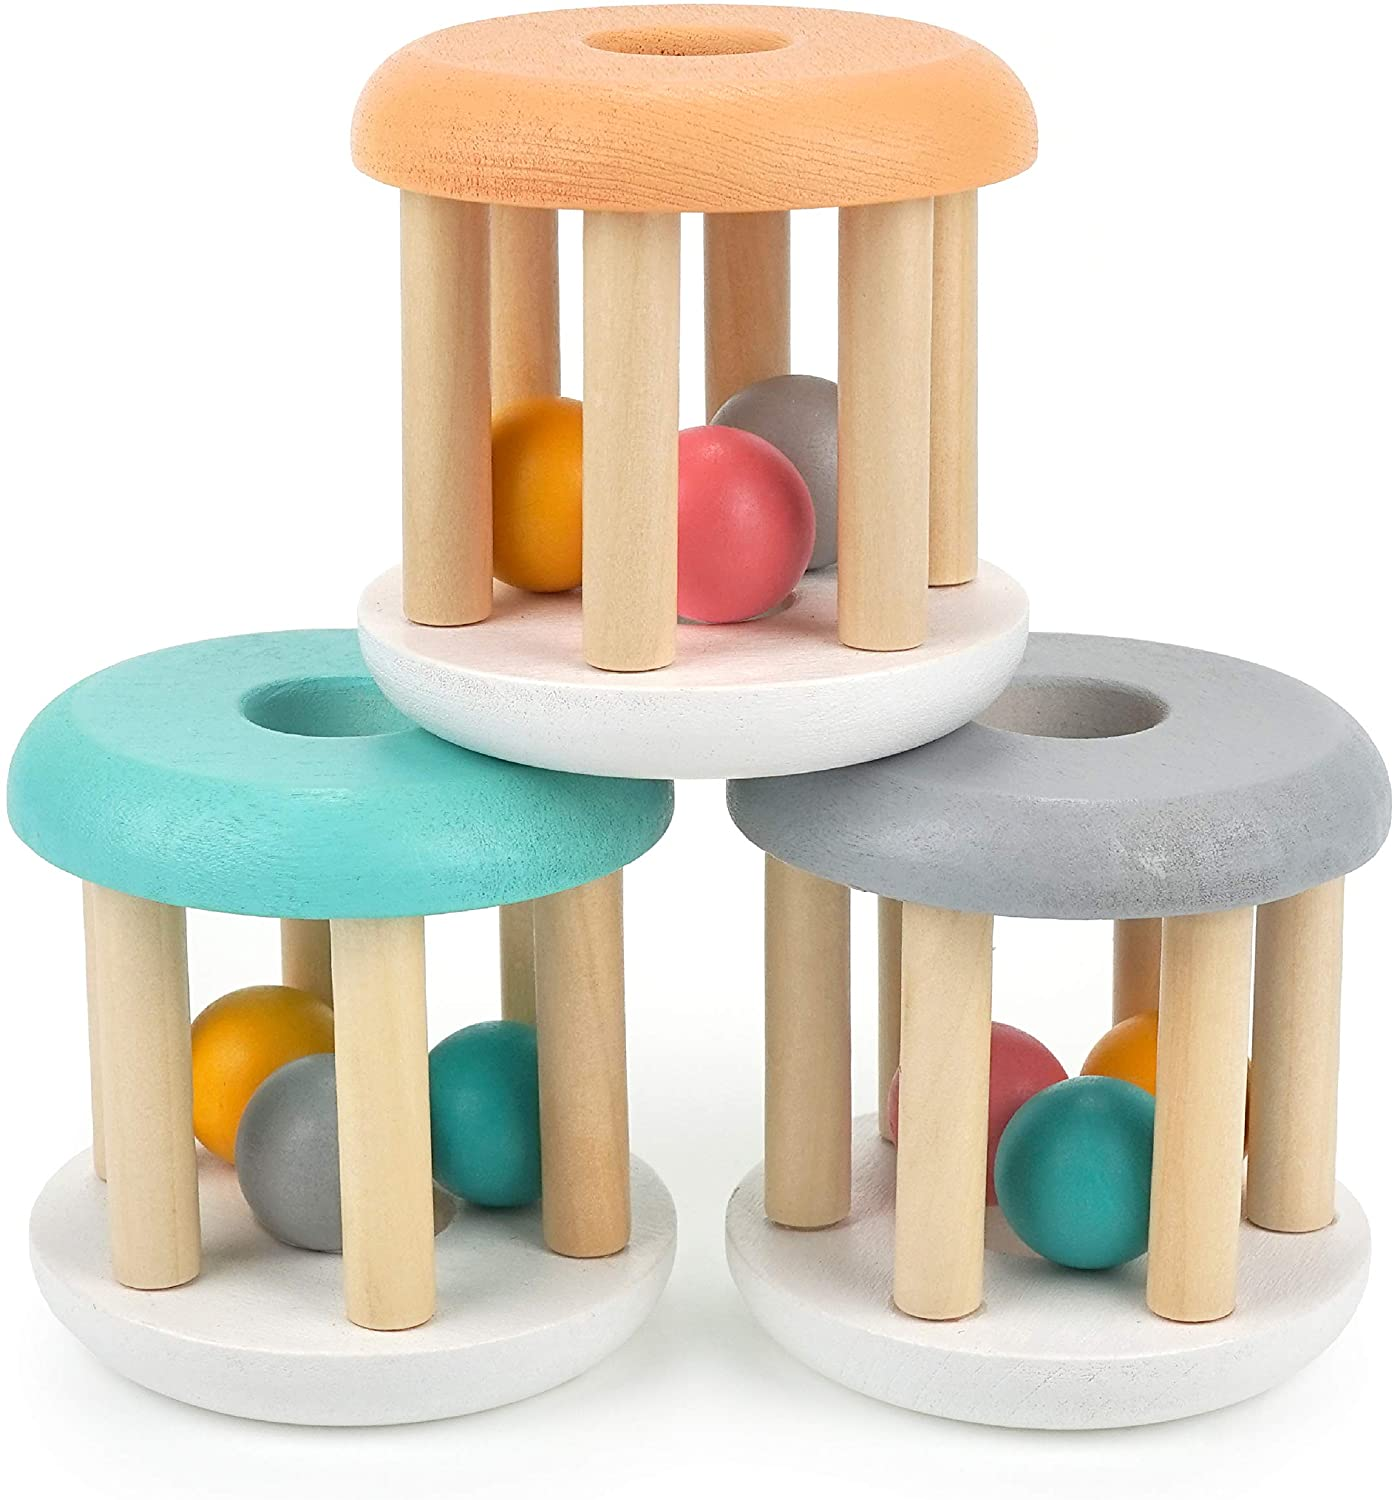 DUCKBOXX XX Wooden Rattle Rollers for Babies Ages 0m – 2yrs (3pcs)